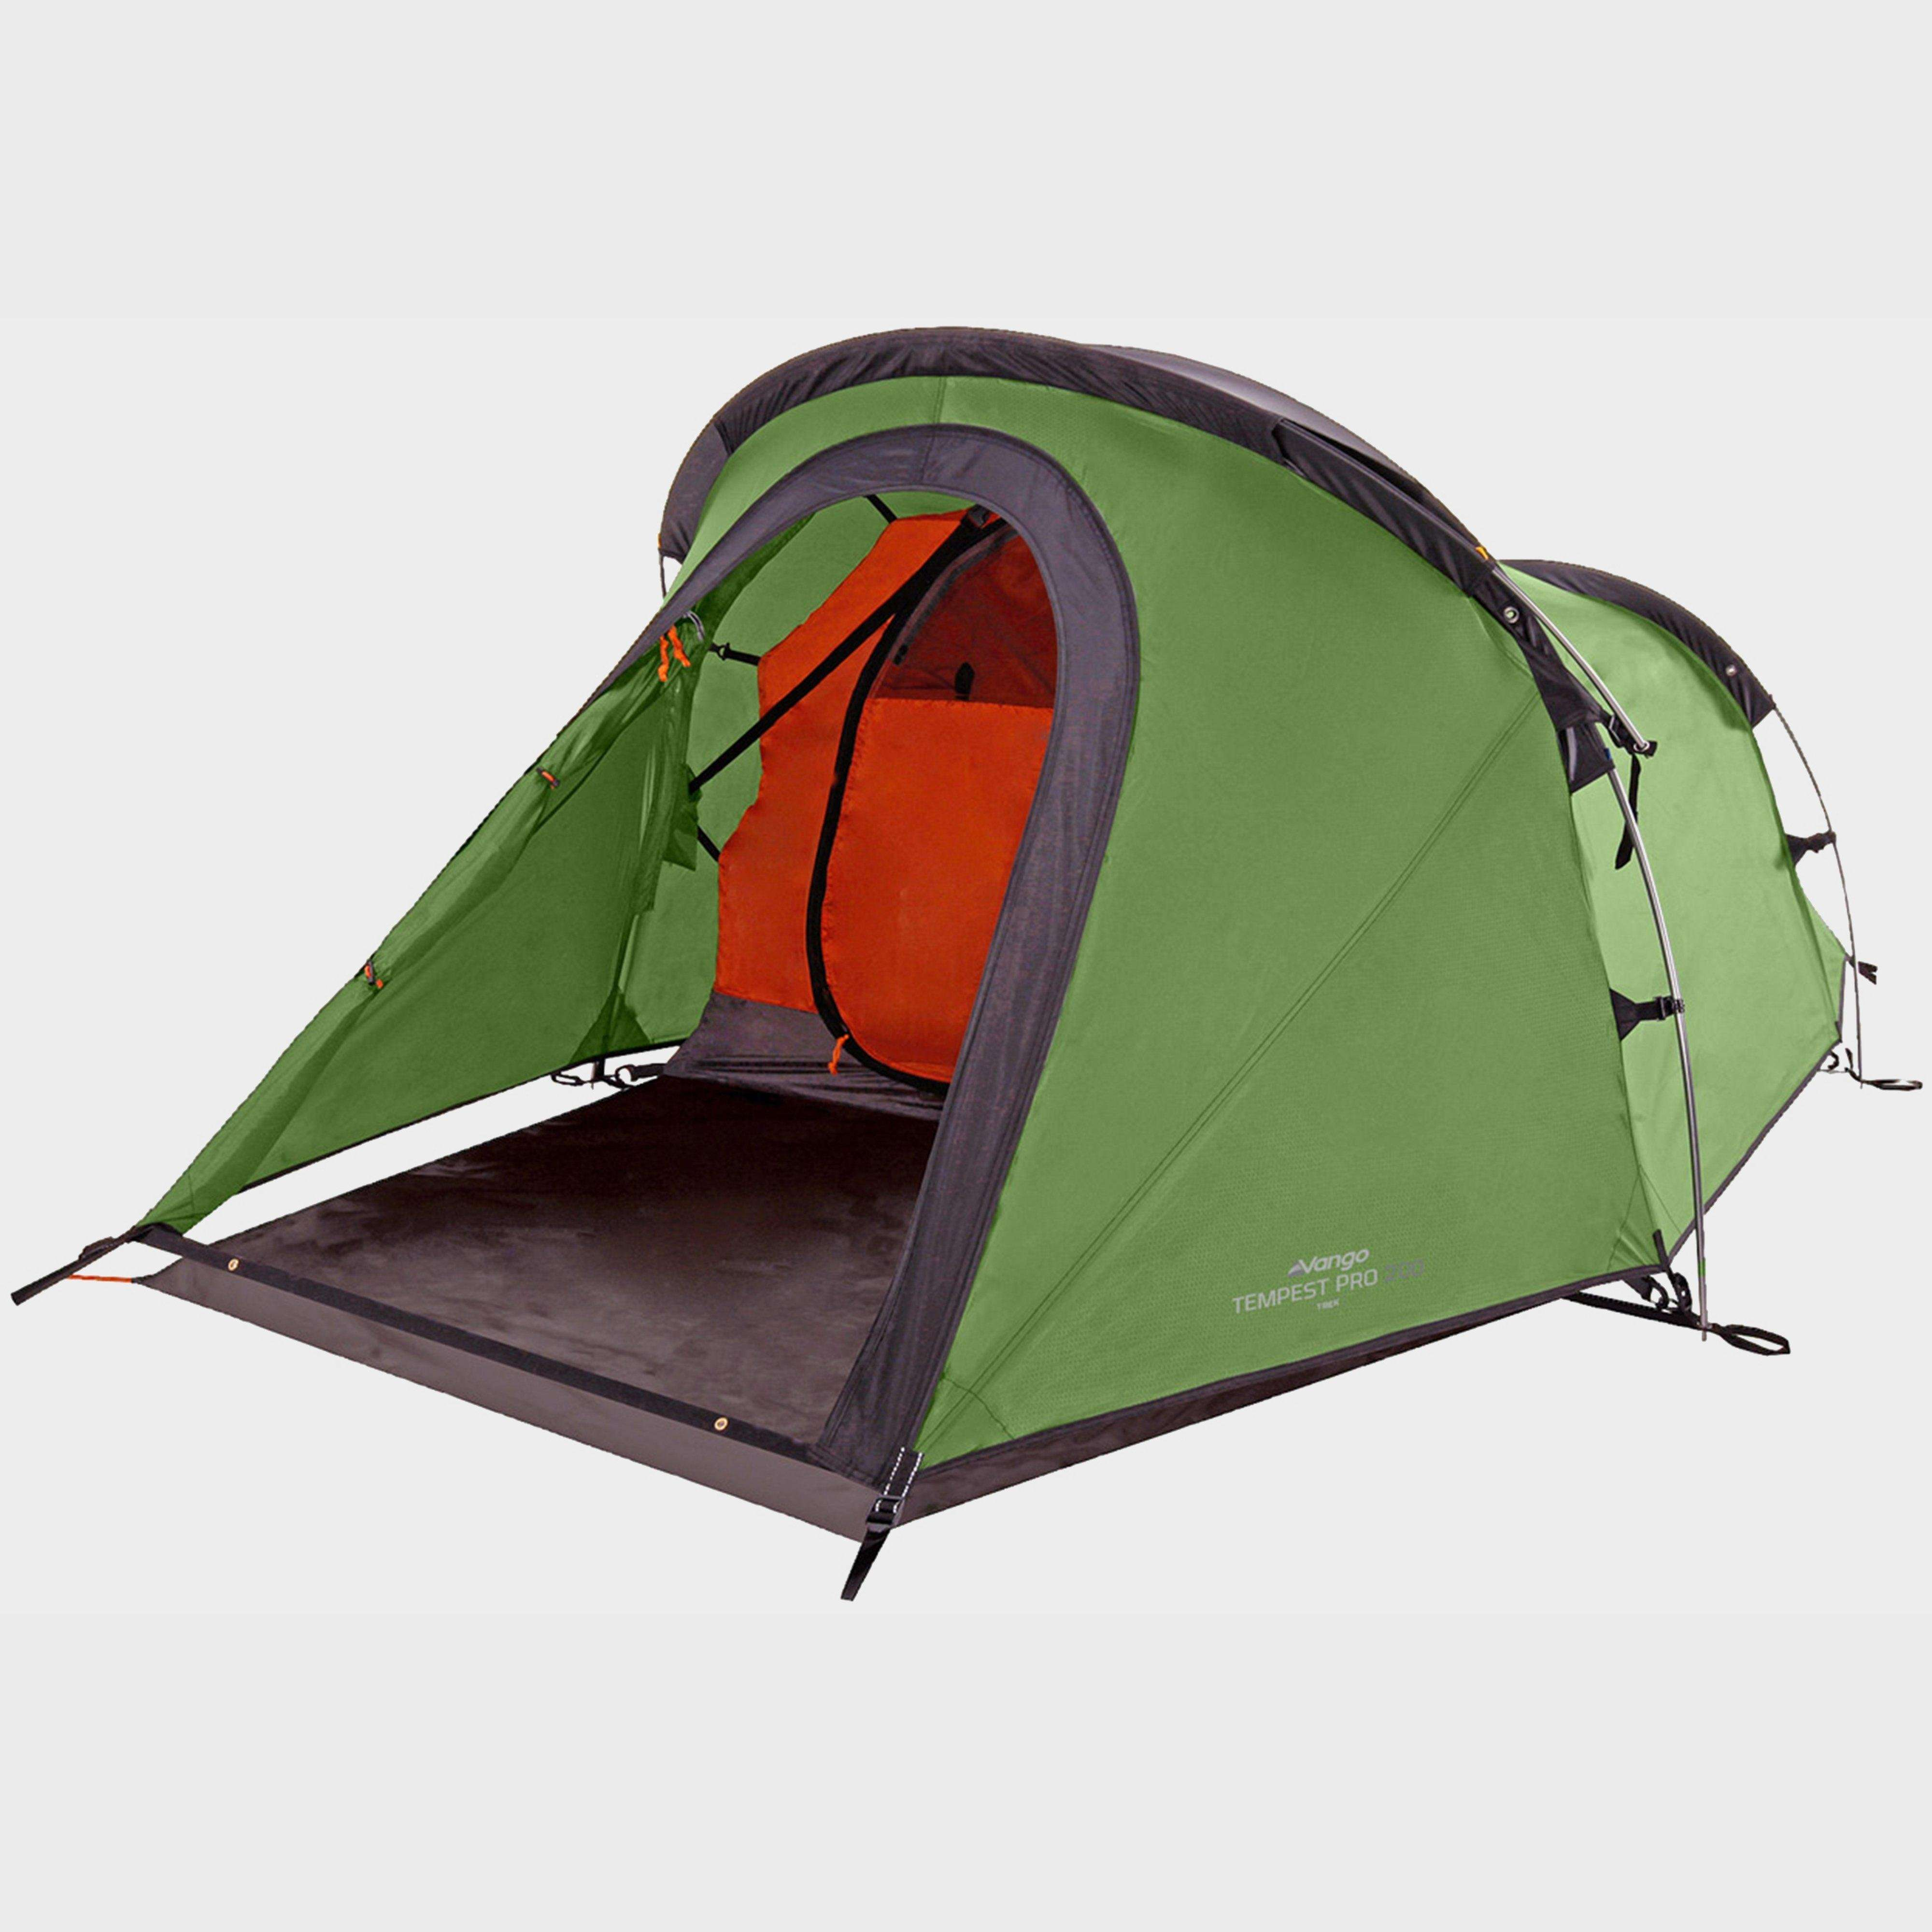 VANGO Tempest 200 Pro Backpacking Tent